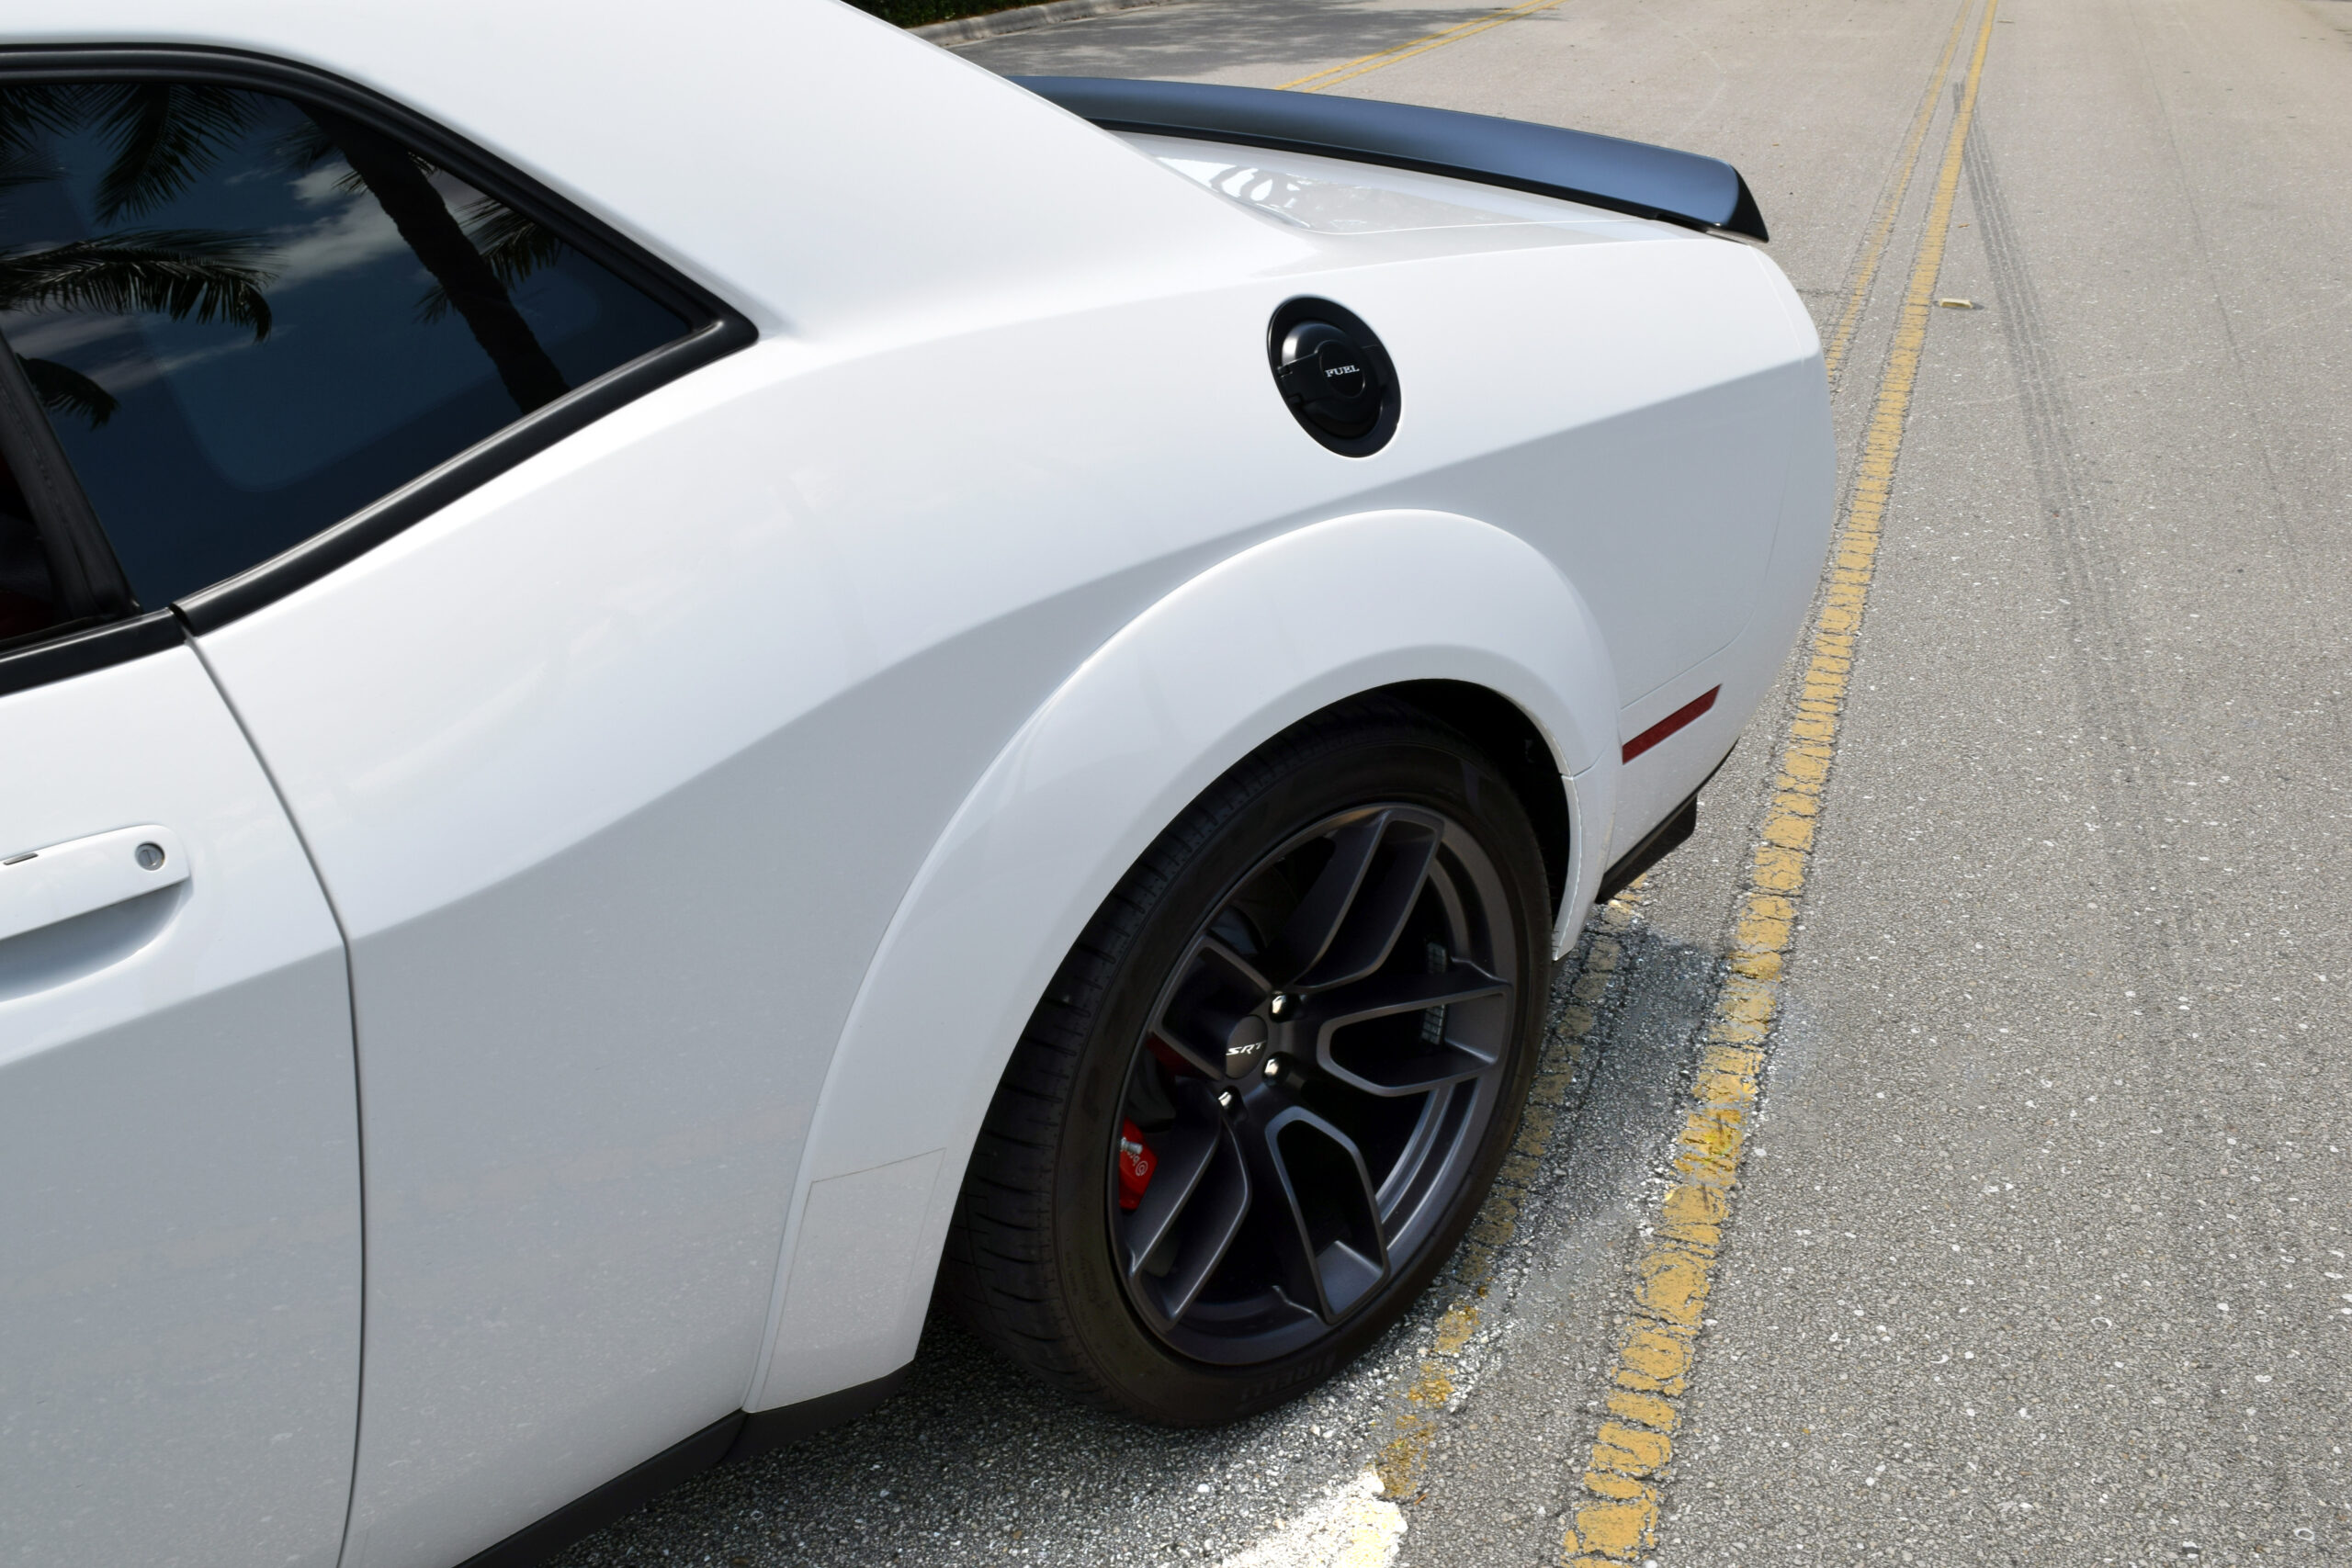 2019 Dodge Challenger Hellcat Redeye   766 miles, One owner, Wide Body, Loaded with options, Original Window Sticker and Factory Warranty